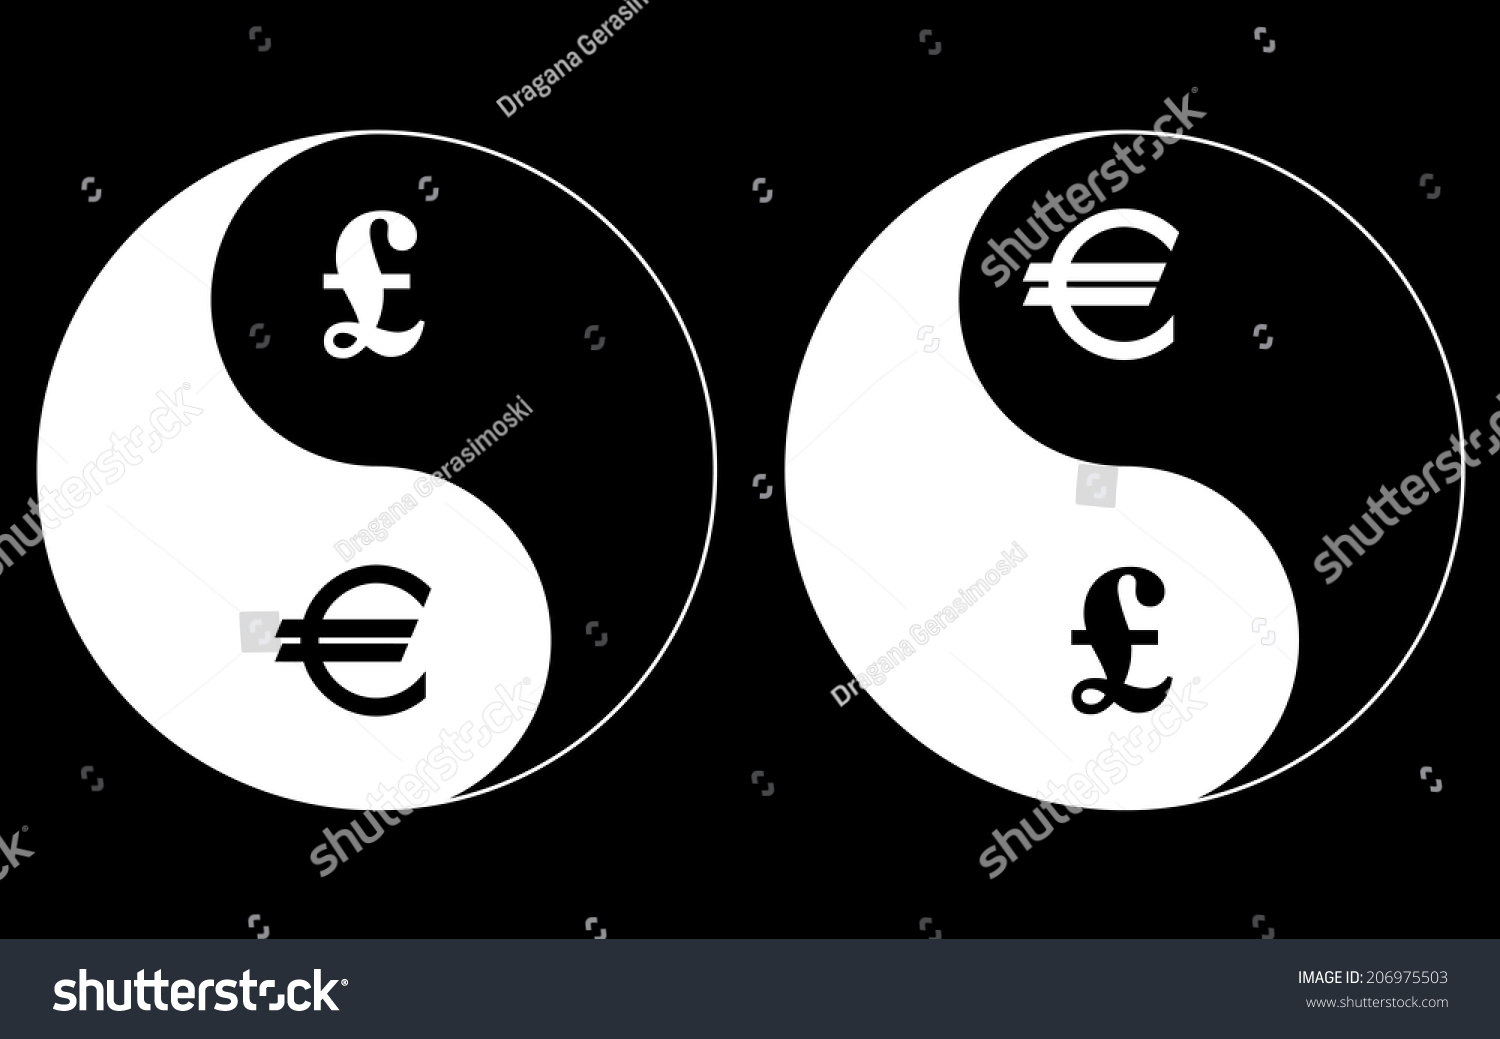 Currency Symbols Euro Image Collections Symbols And Meanings Chart